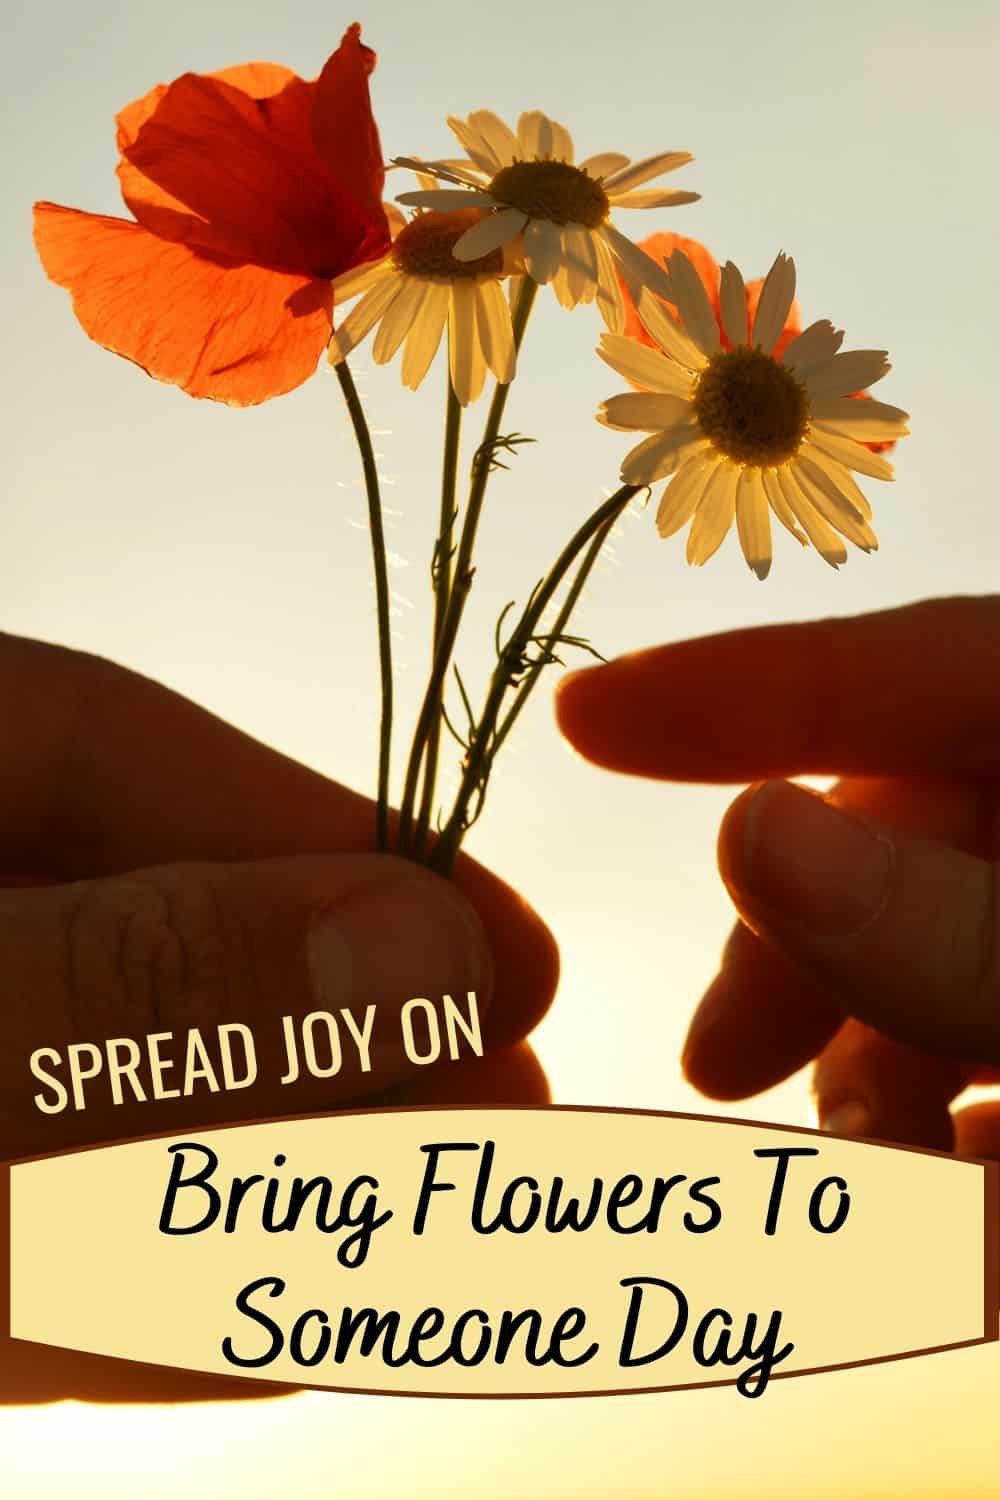 Spread joy on Bring Flowers To Someone Day